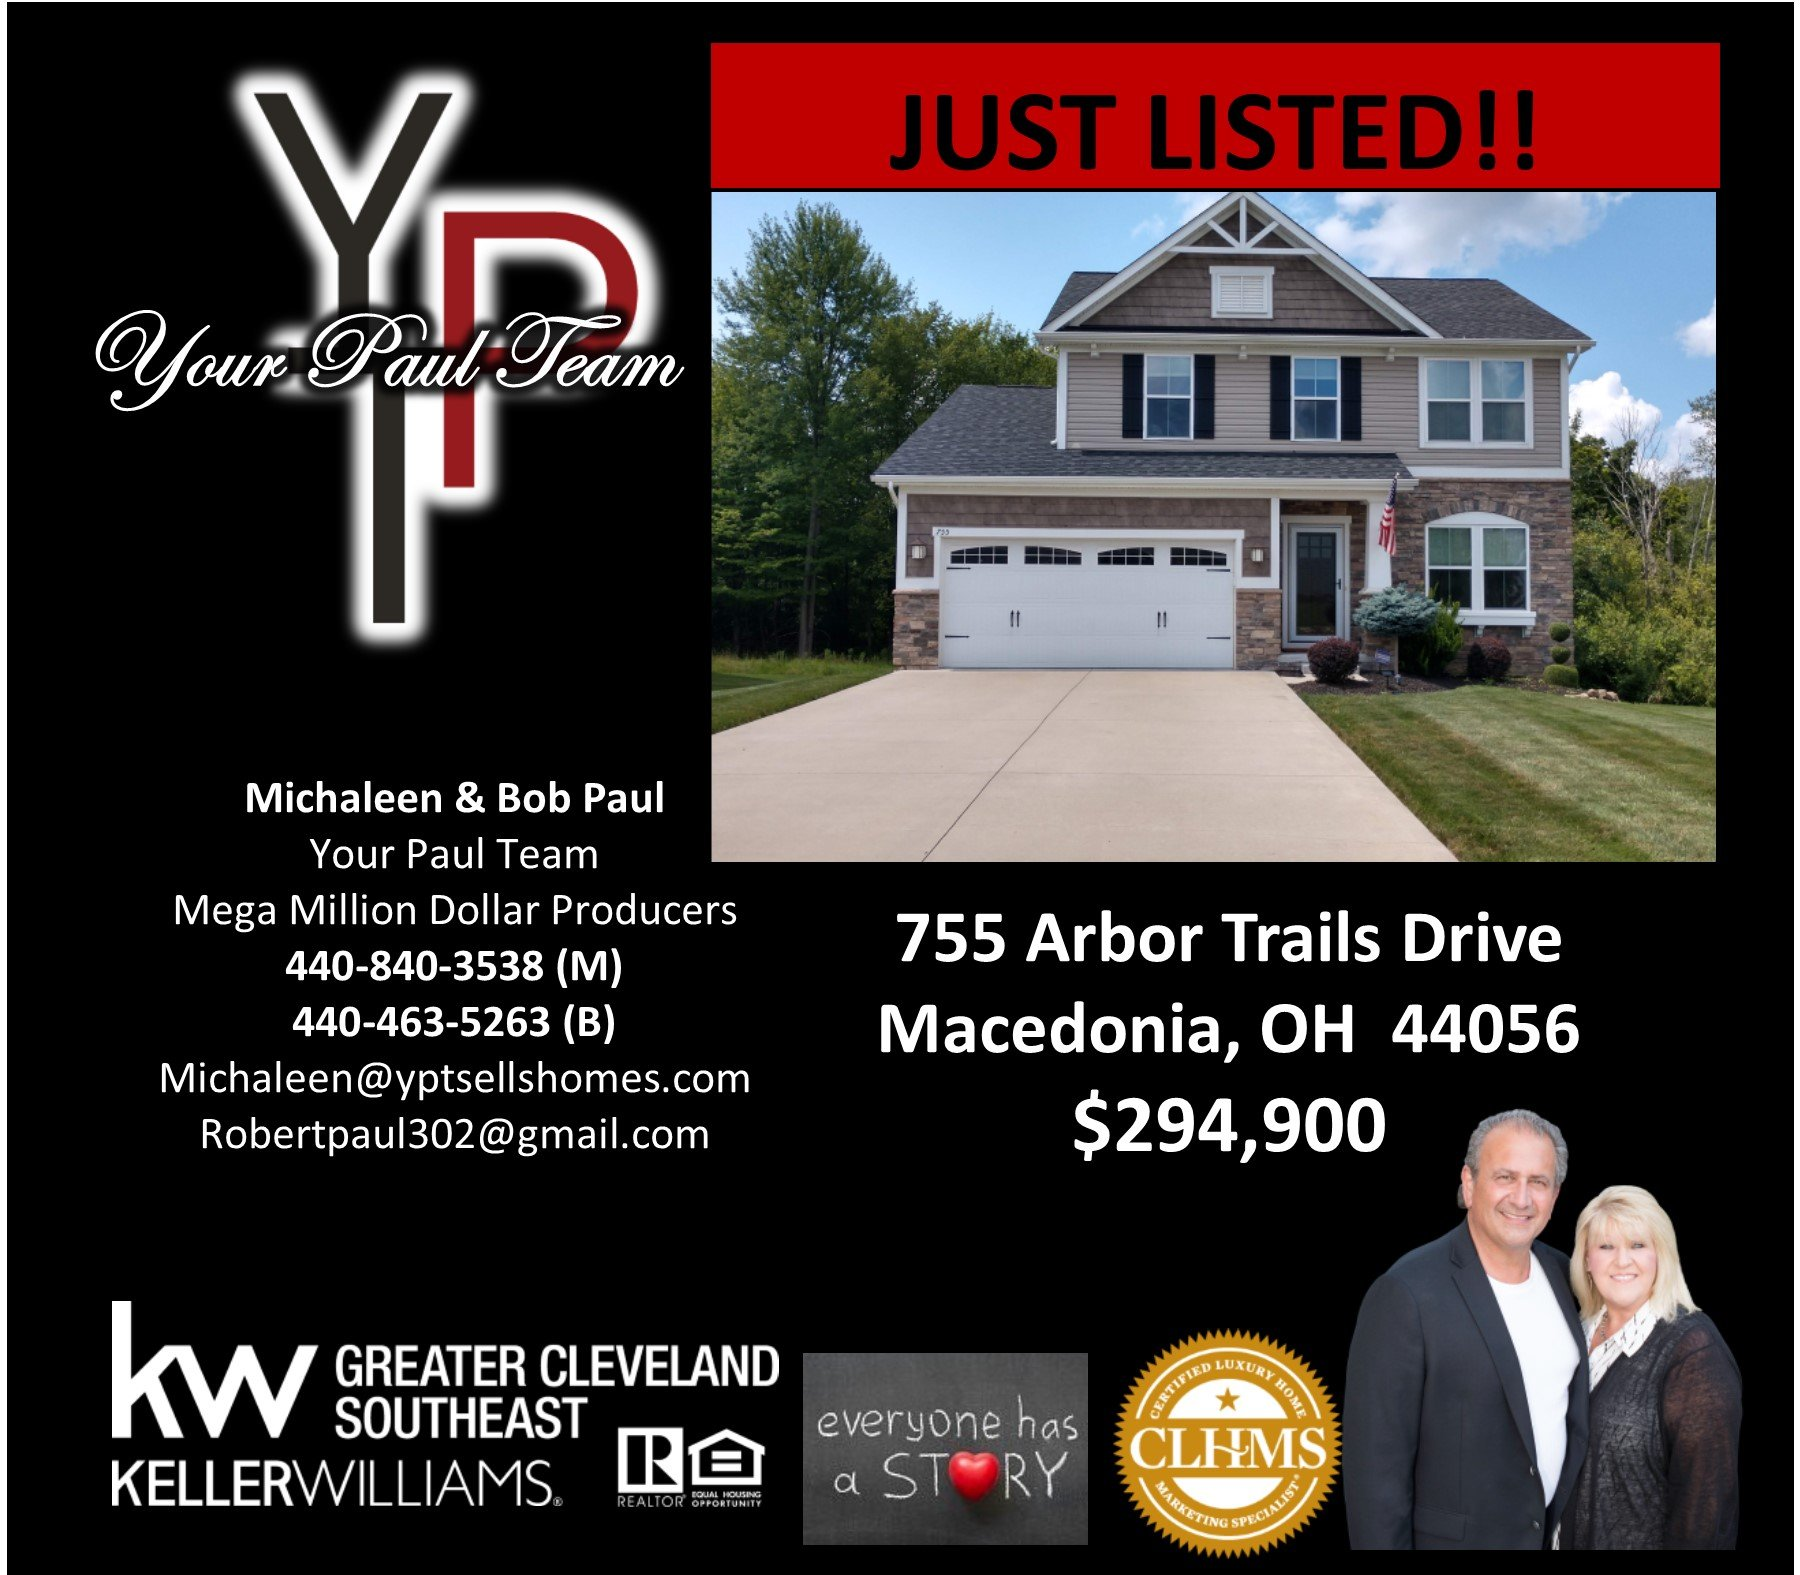 Just Listed! 755 Arbor Trails Drive – Macedonia